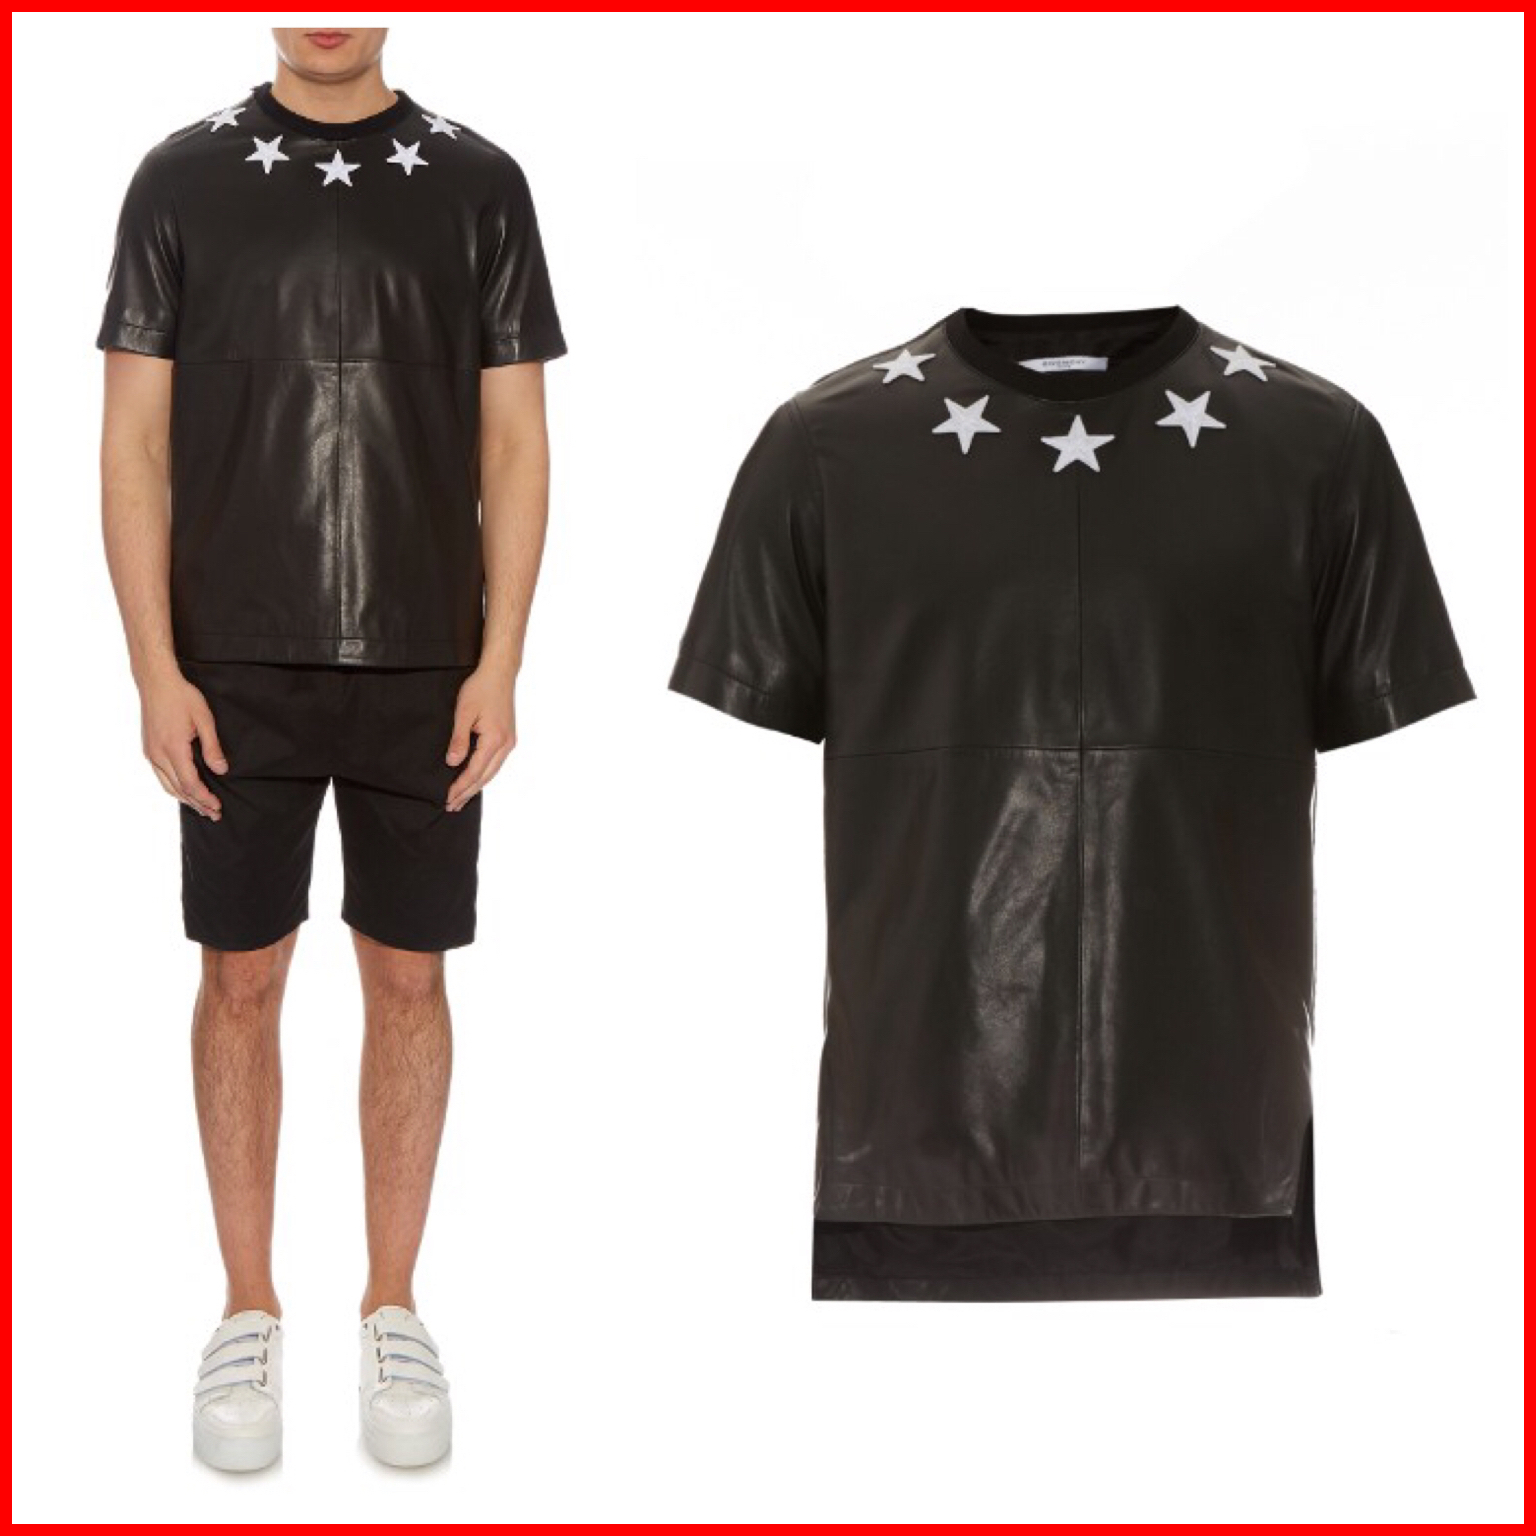 Givenchy sale star embroidered leather t shirt buyma for Givenchy t shirts for sale